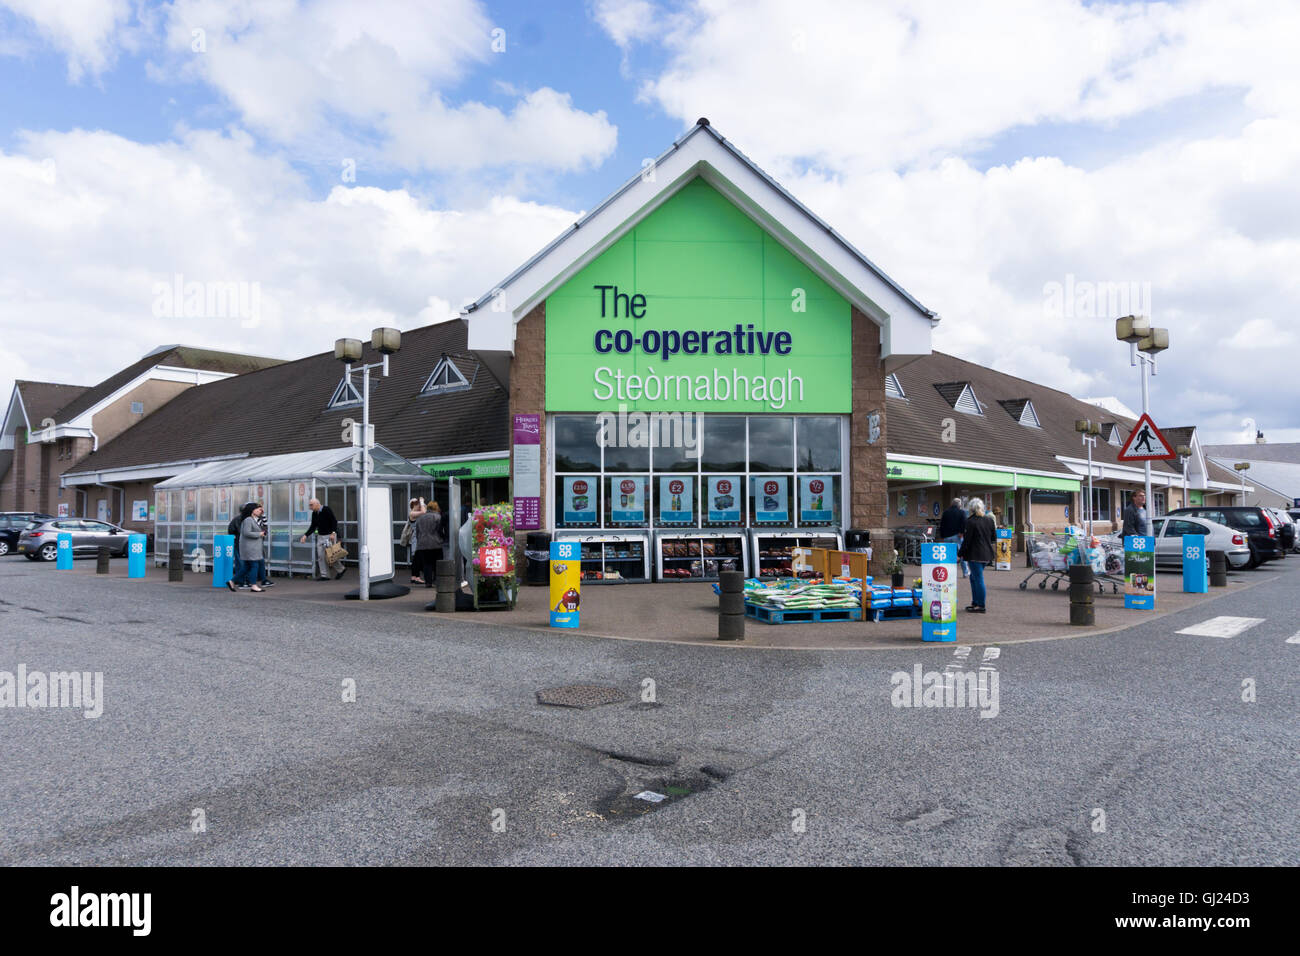 Co-Operative supermarket in Stornoway on the Isle of Lewis, Outer Hebrides. - Stock Image